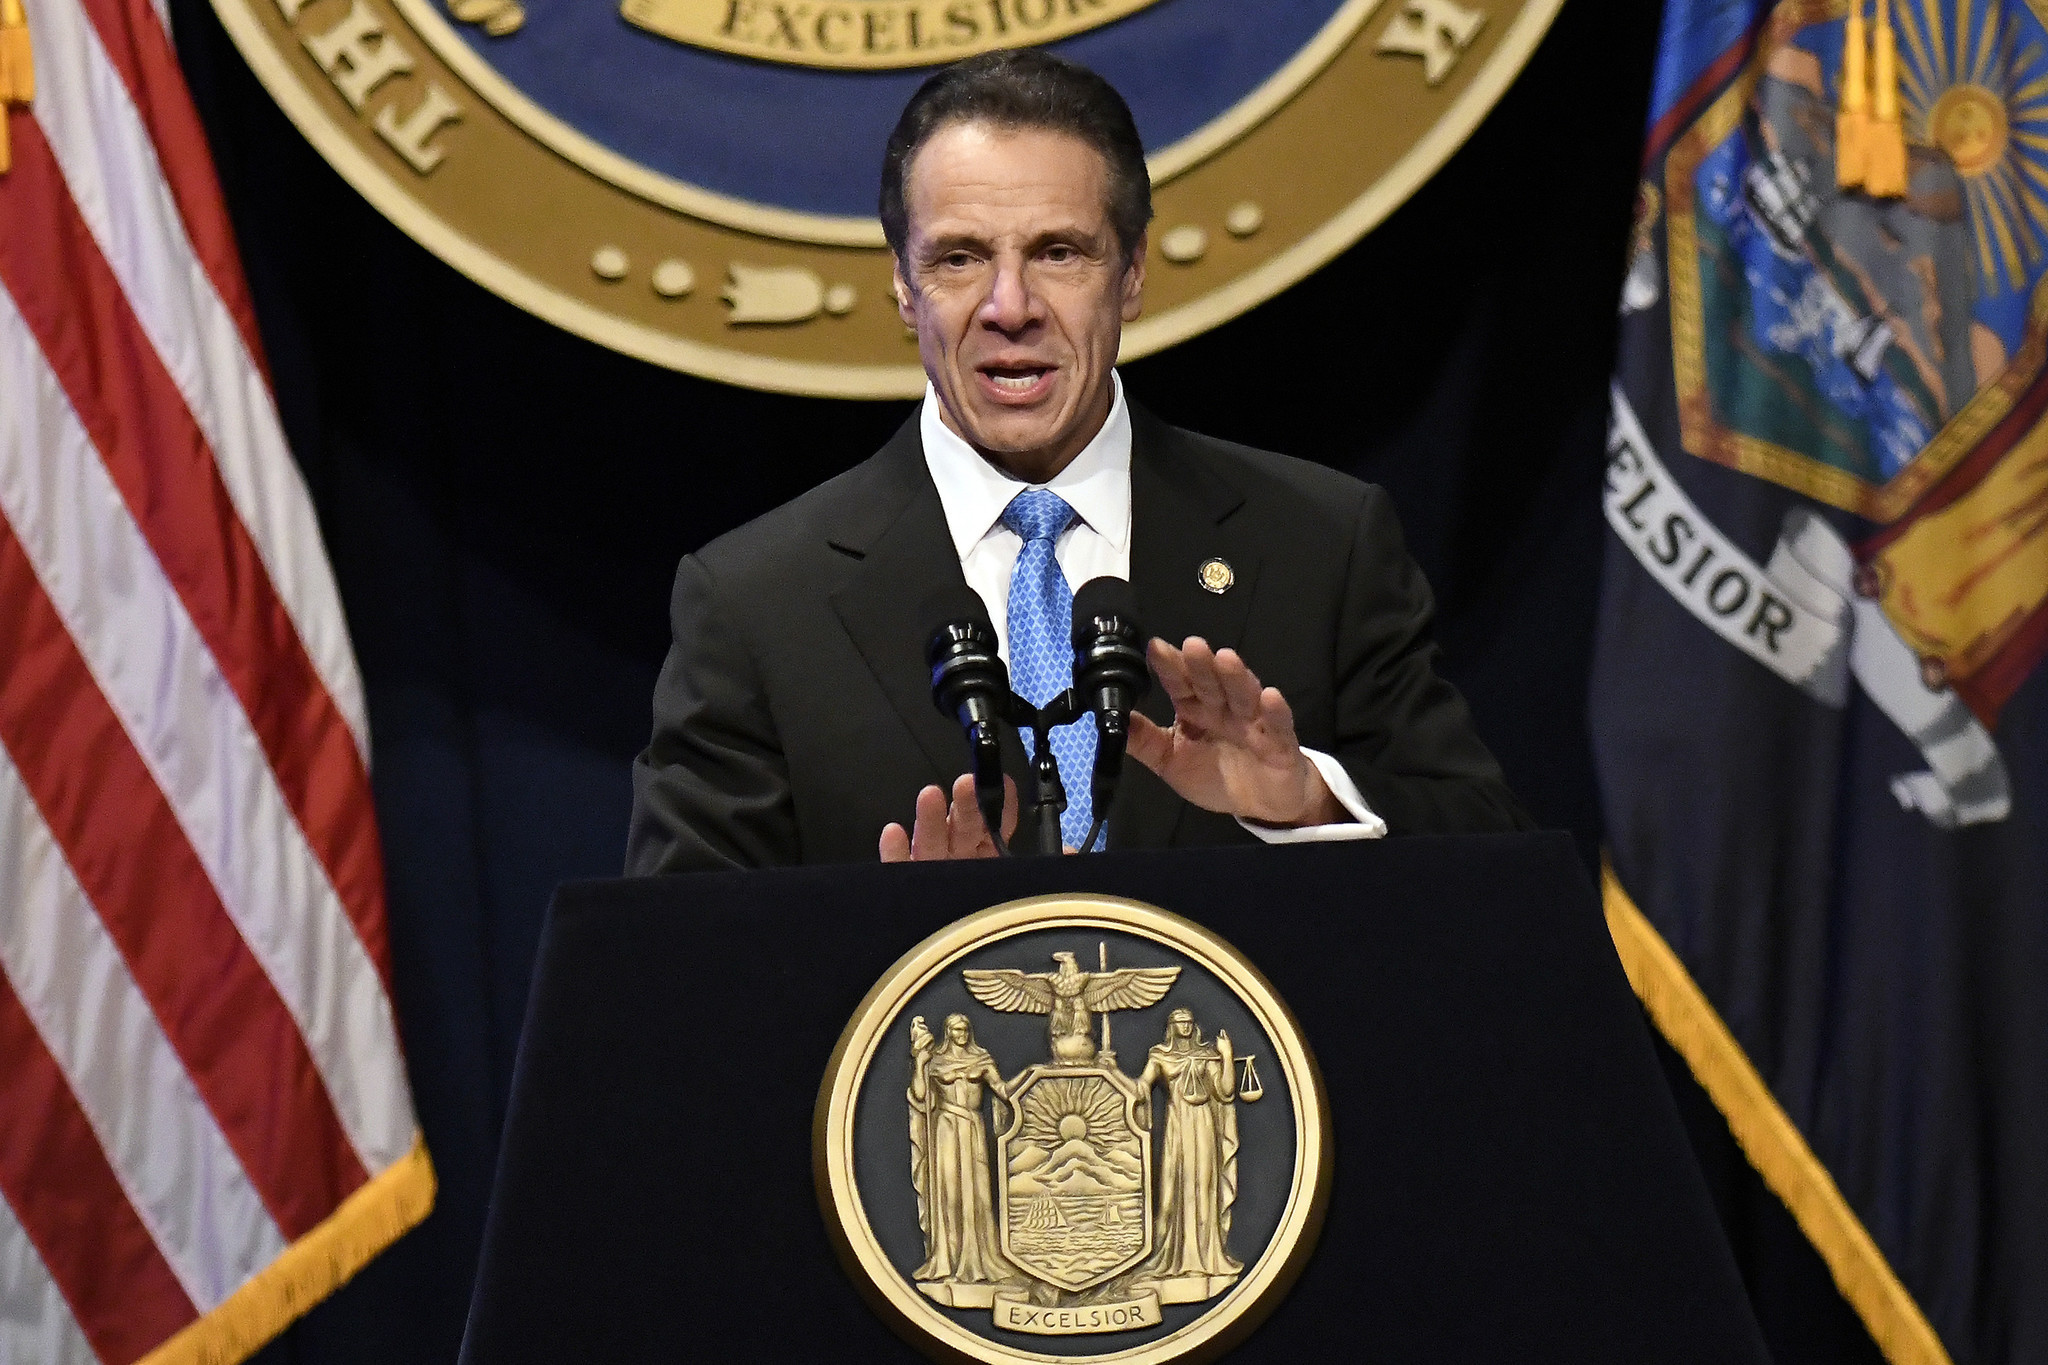 No major Medicaid cost shift to NYC in budget, but Cuomo restructuring includes hospital cuts